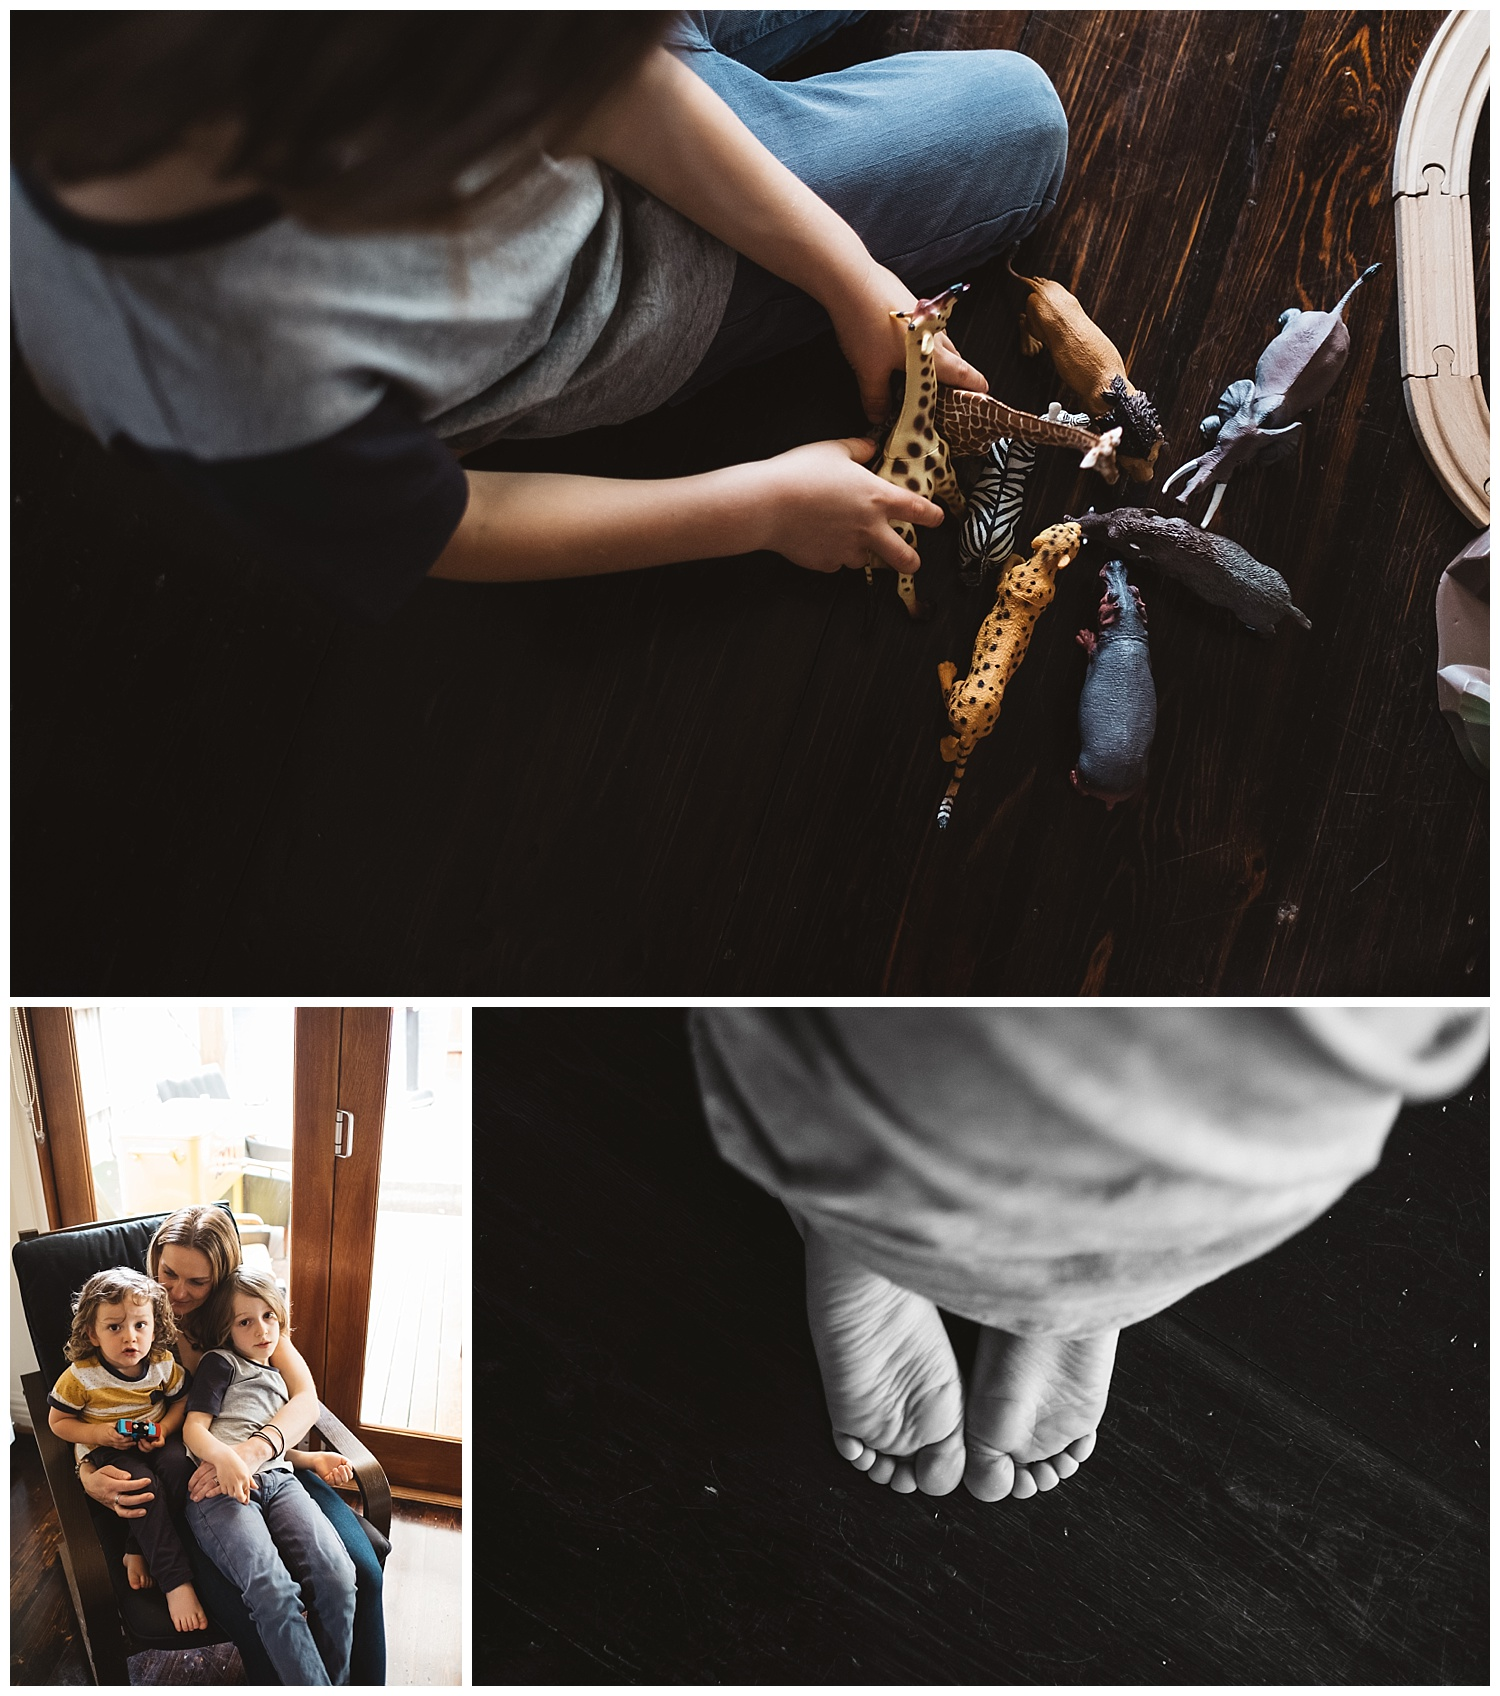 Brunswick newborn and family photos with genuine emotions and natural feelings